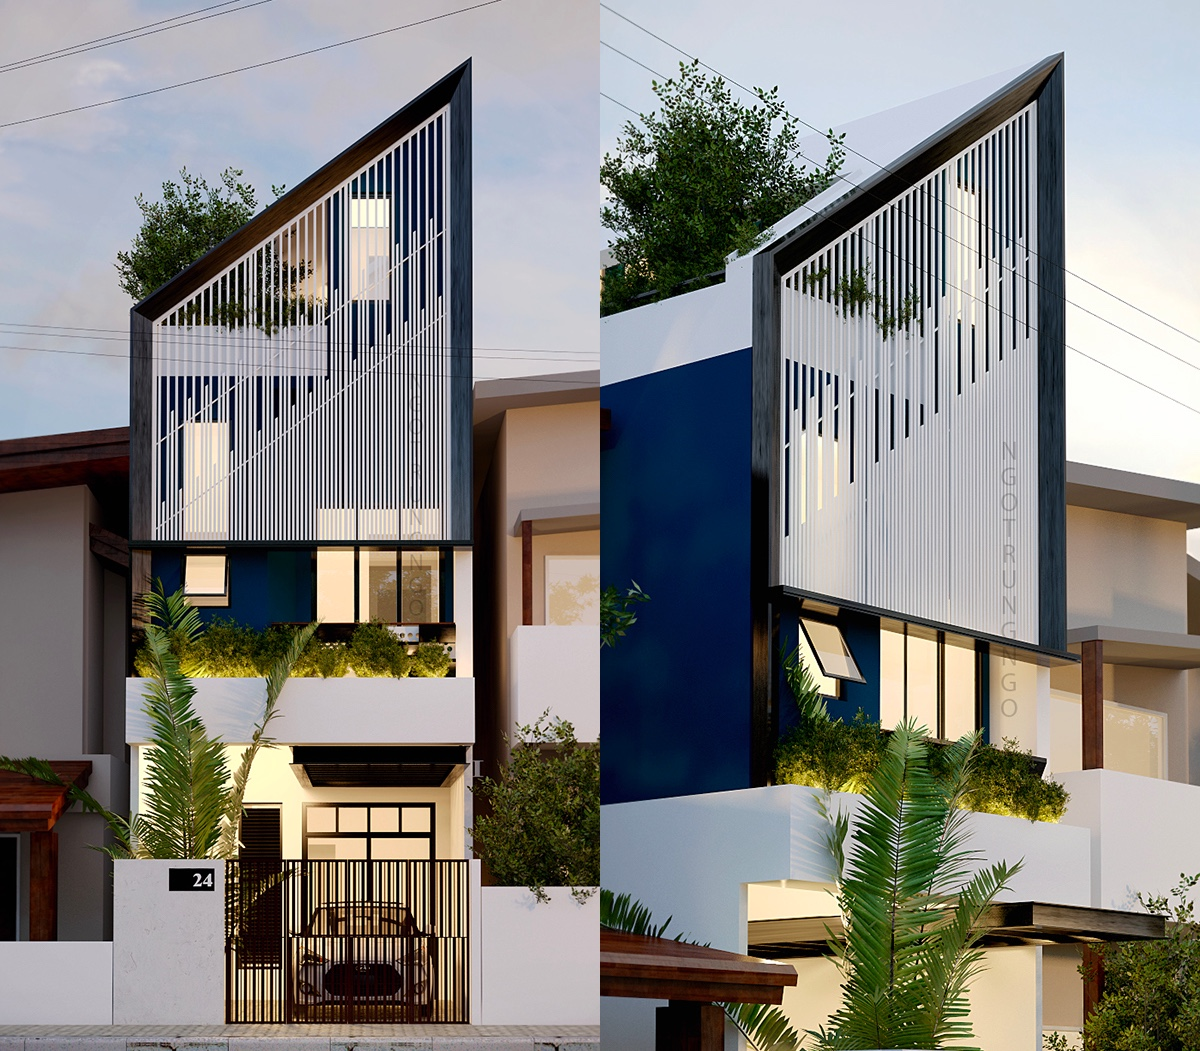 50 Narrow Lot Houses That Transform A Skinny Exterior Into ... on upstairs house design, gym house design, wood house design, bathroom house design, backyard house design, two-story beach house design, living room house design, balcony house design, hotel house design, roof house design, modern toilet and bathroom design, laundry house design, napkin house design, ground house design, bar house design, attic house design, home house design, food house design, parking house design, school house design,